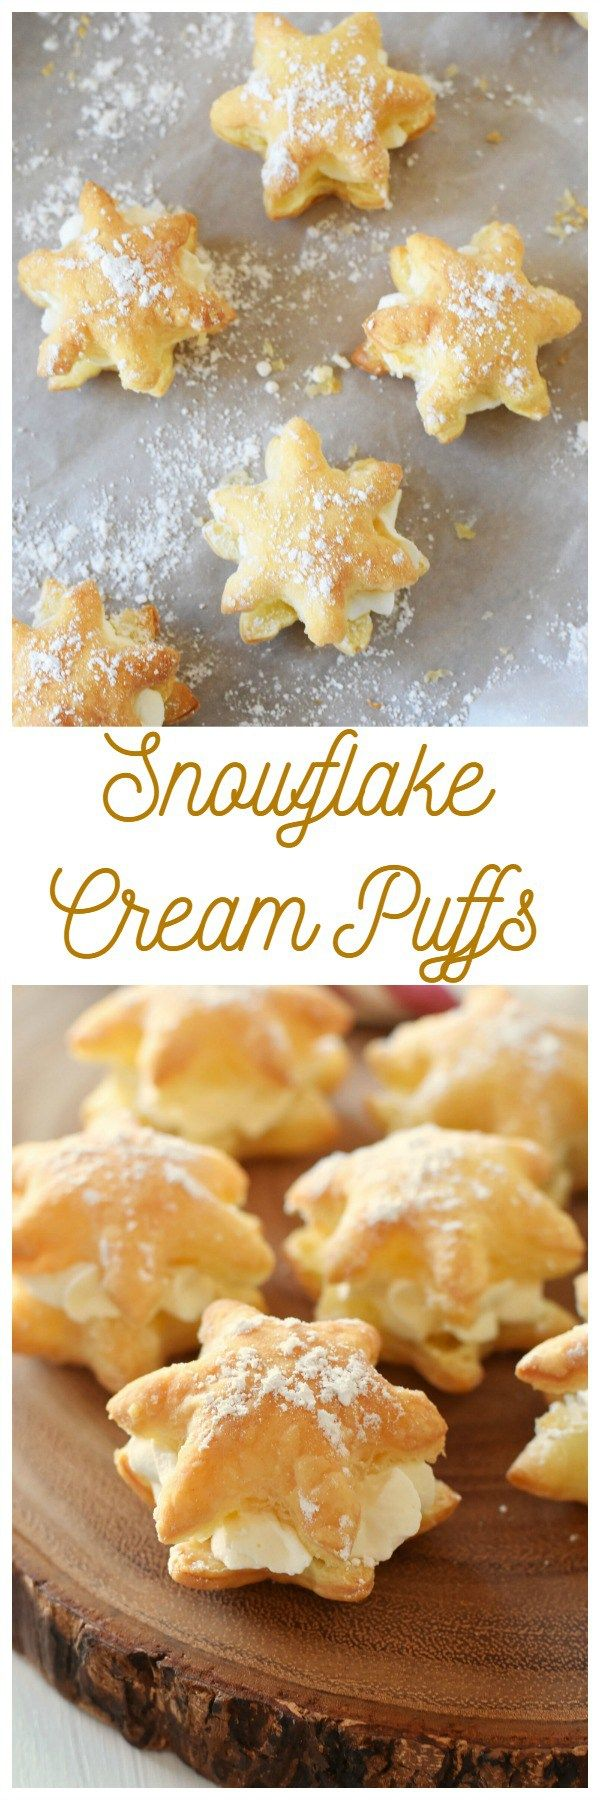 20 Minute Snowflake Cream Puffs- Looking for a quick and easy bakery-style dessert? These snowflake cream puffs are for you then! They are made with real whipped cream.